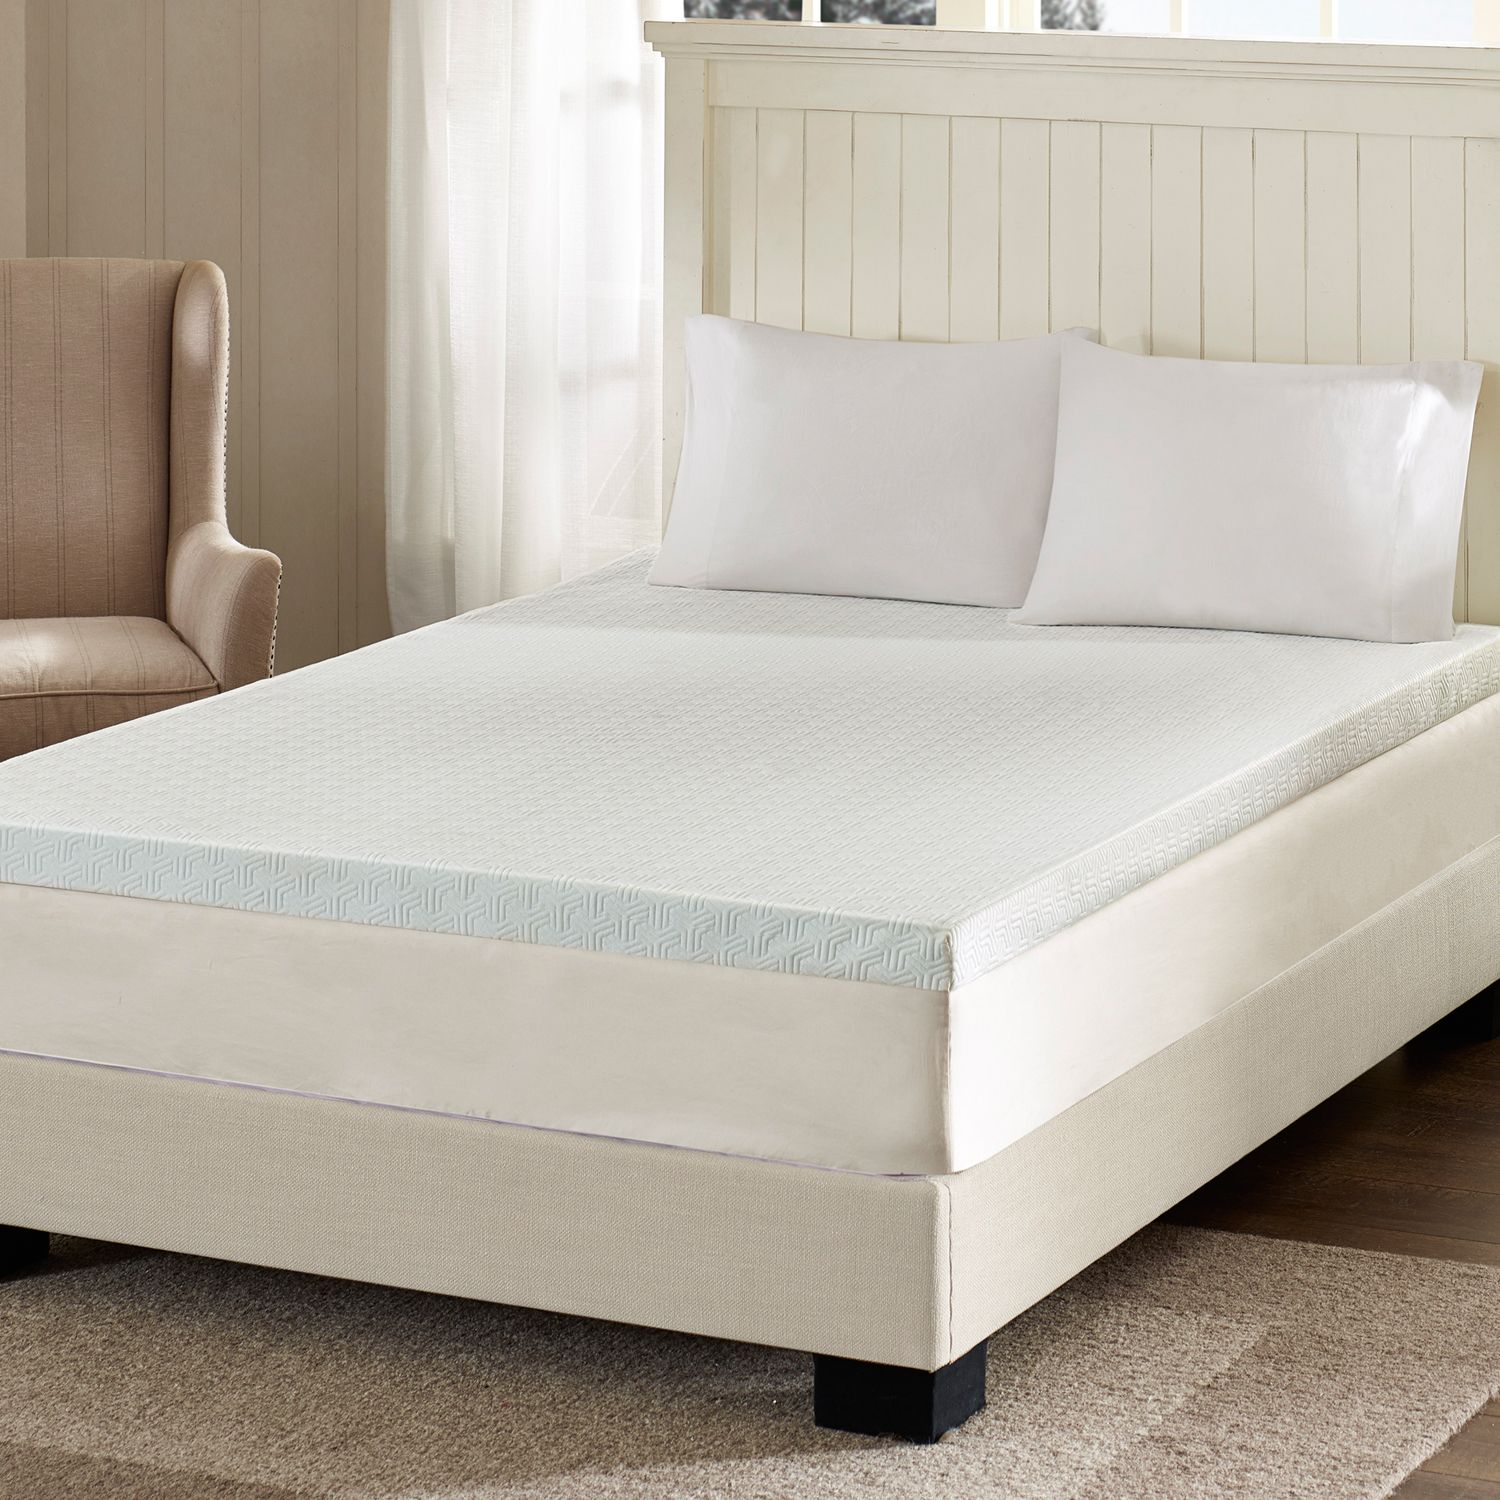 flexapedic by sleep philosophy 3inch twin xl memory foam mattress topper